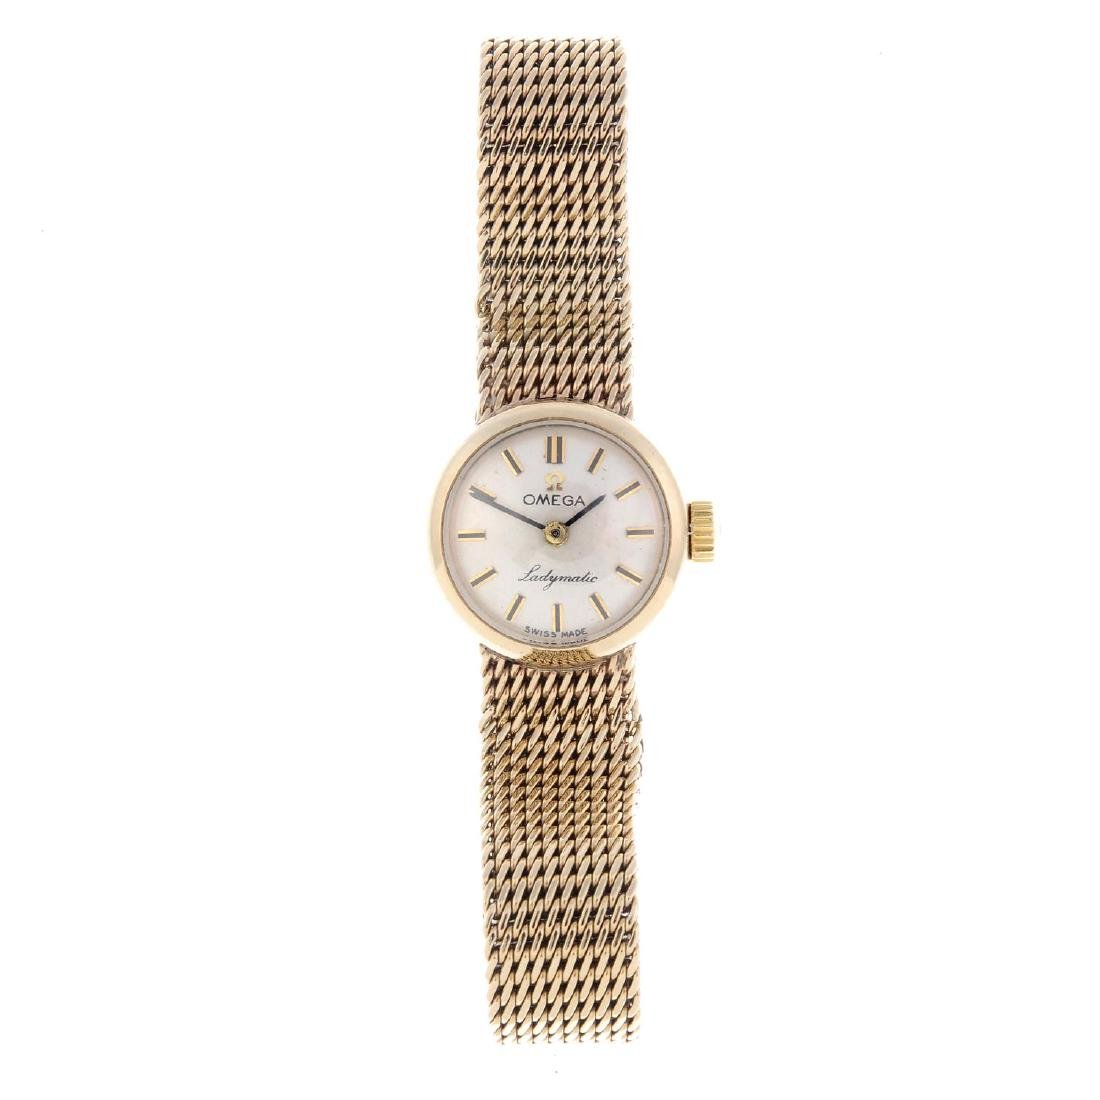 OMEGA - a lady's Ladymatic bracelet watch. Yellow metal